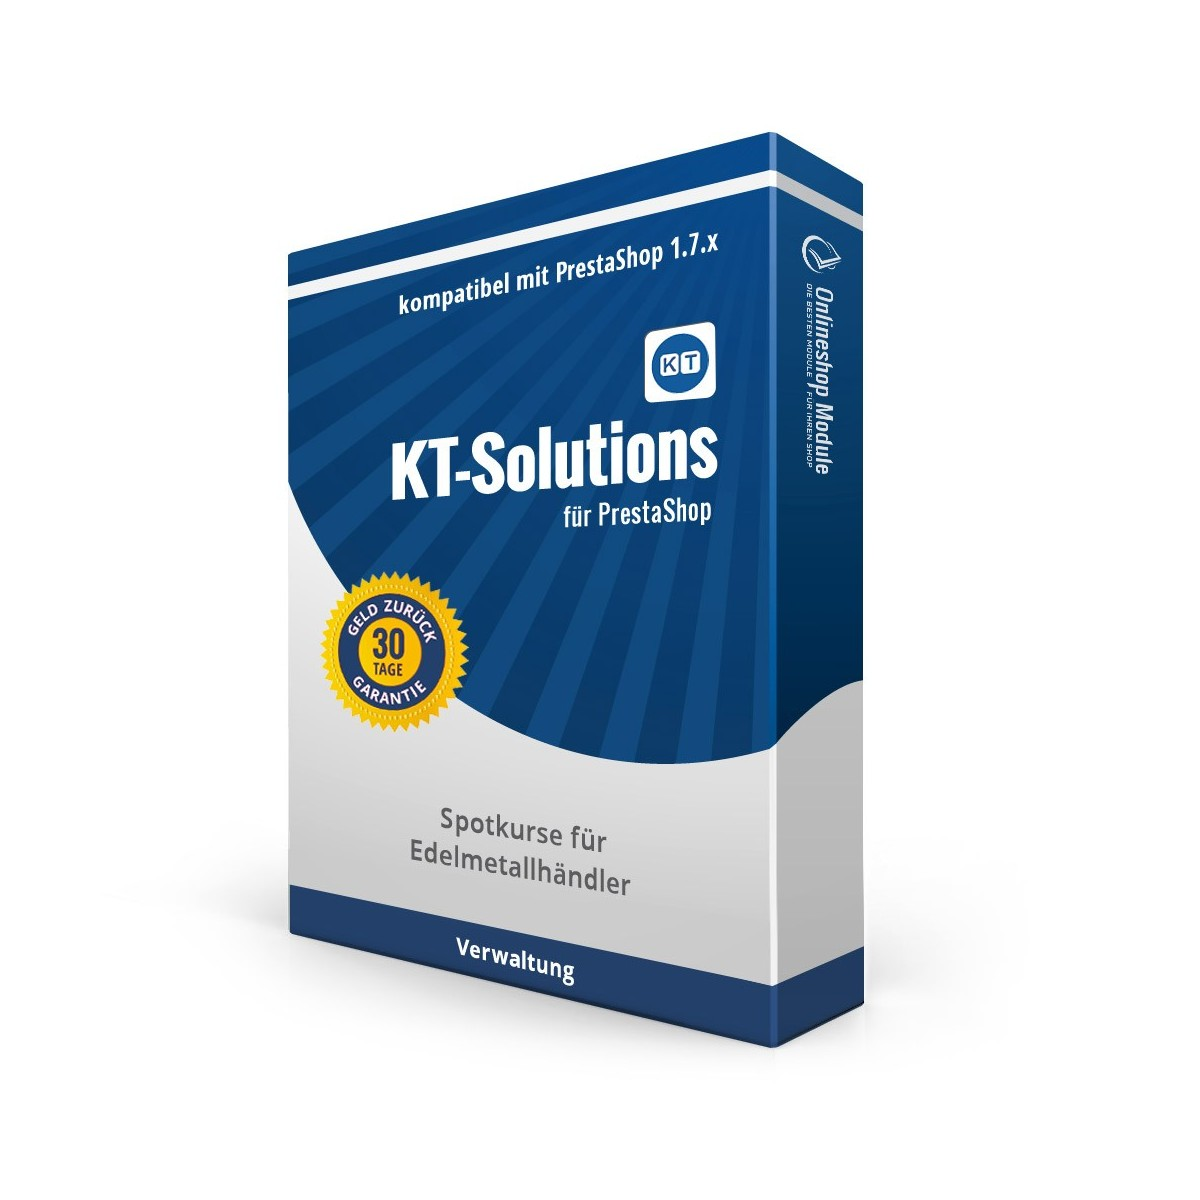 KT-Solutions PS1.7